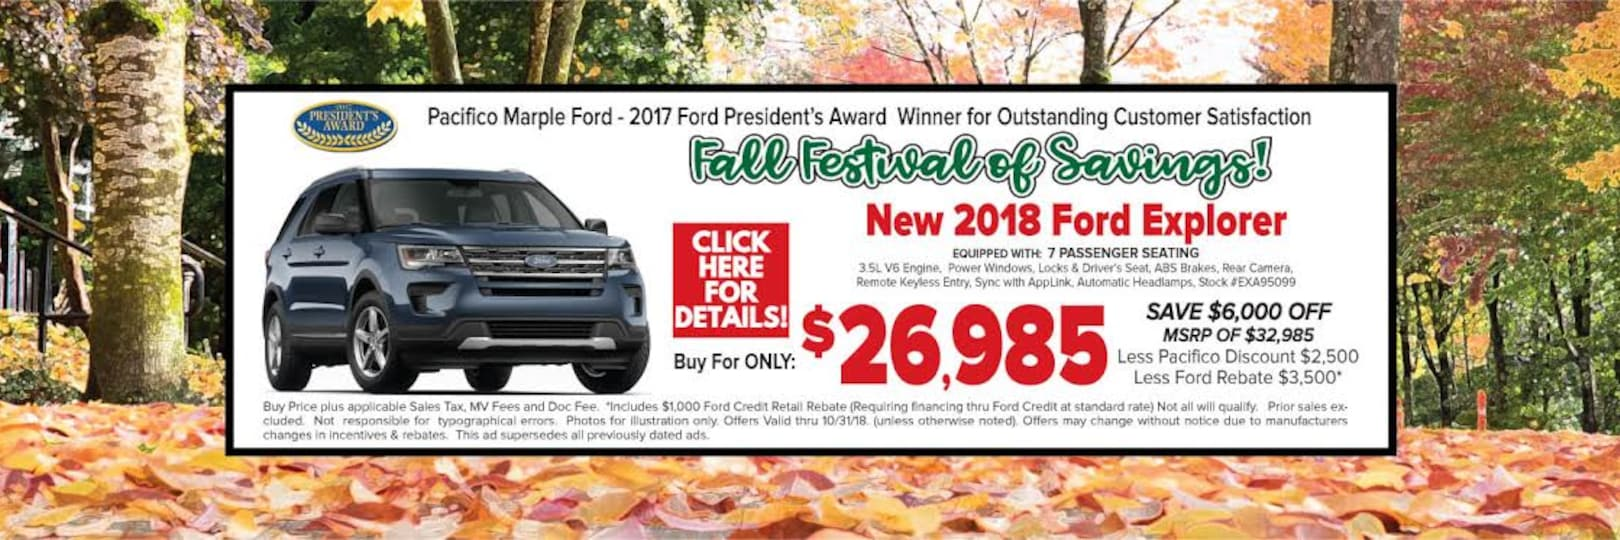 Pacifico Marple Ford >> Pacifico Marple Ford Lincoln | Ford Dealership in Broomall, PA